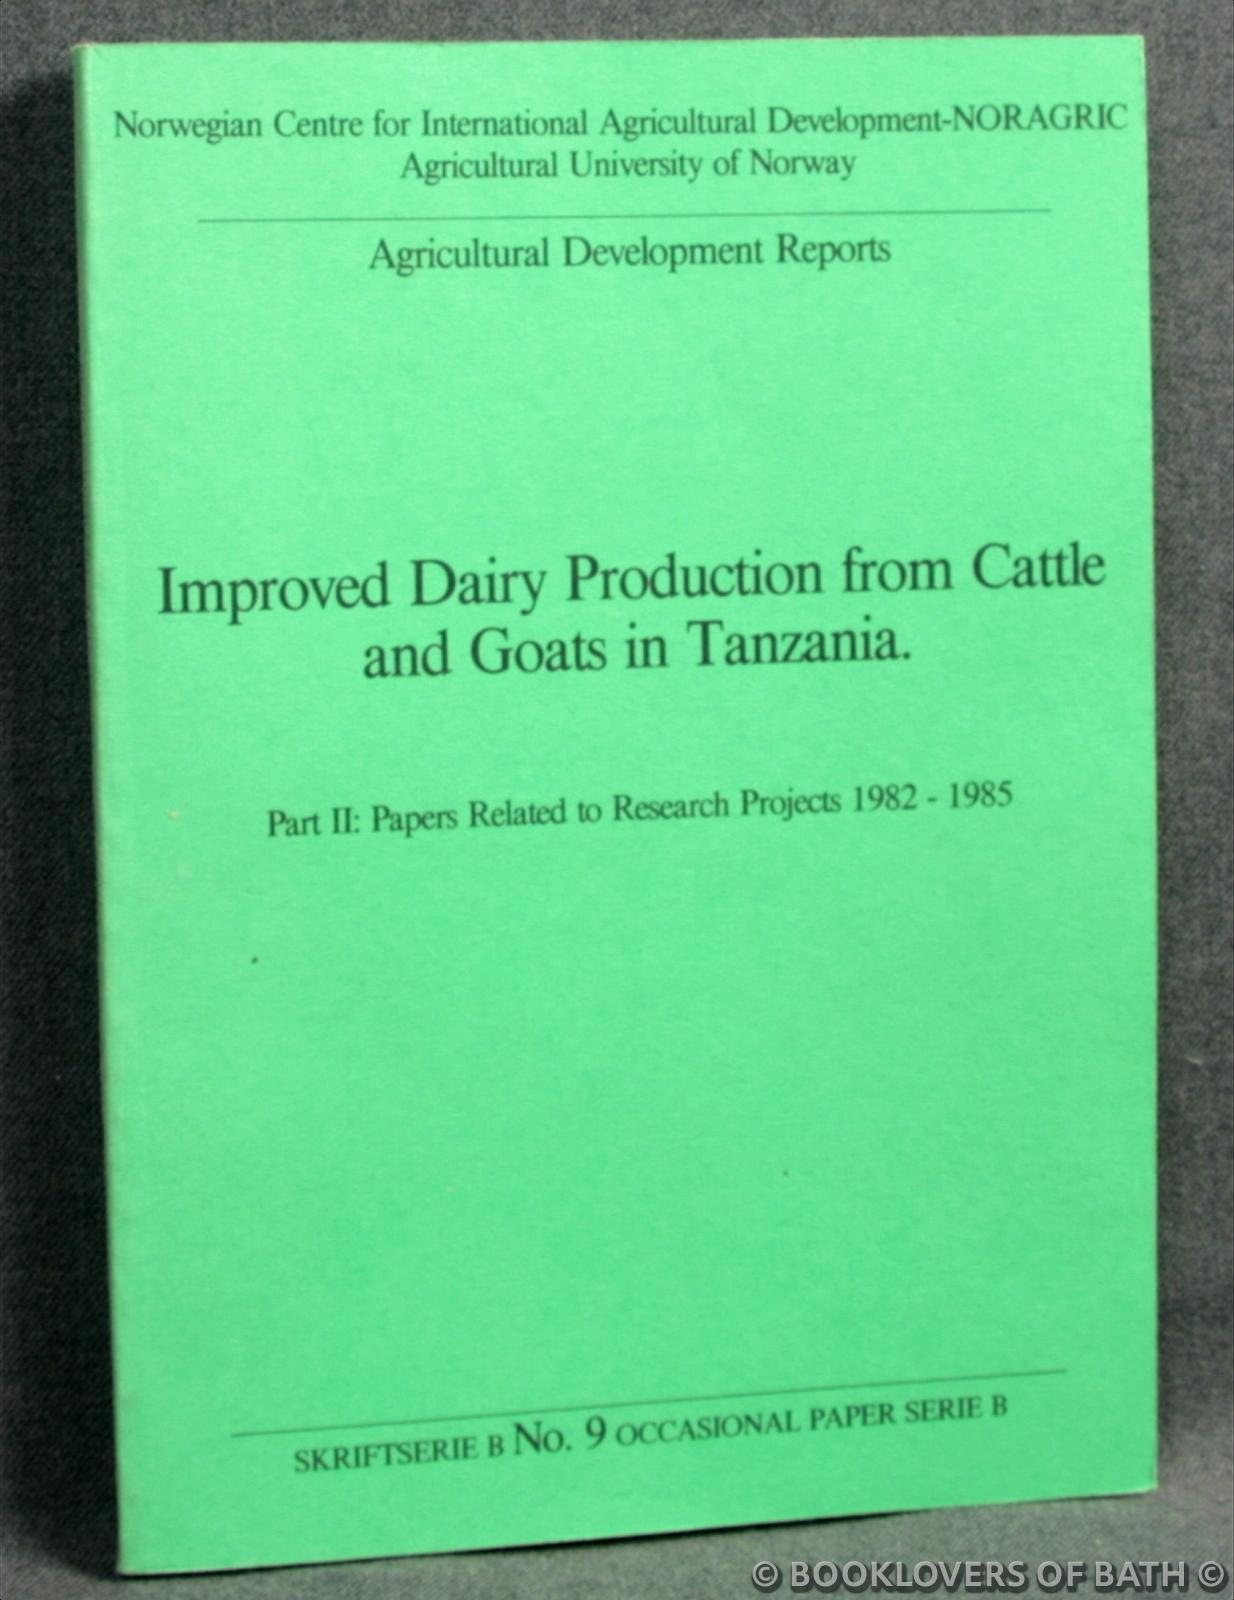 Improved Dairy Production from Cattle and Goats in Tanzania: Part II: Papers Related to Research Projects 1982 -1985 - Anon.